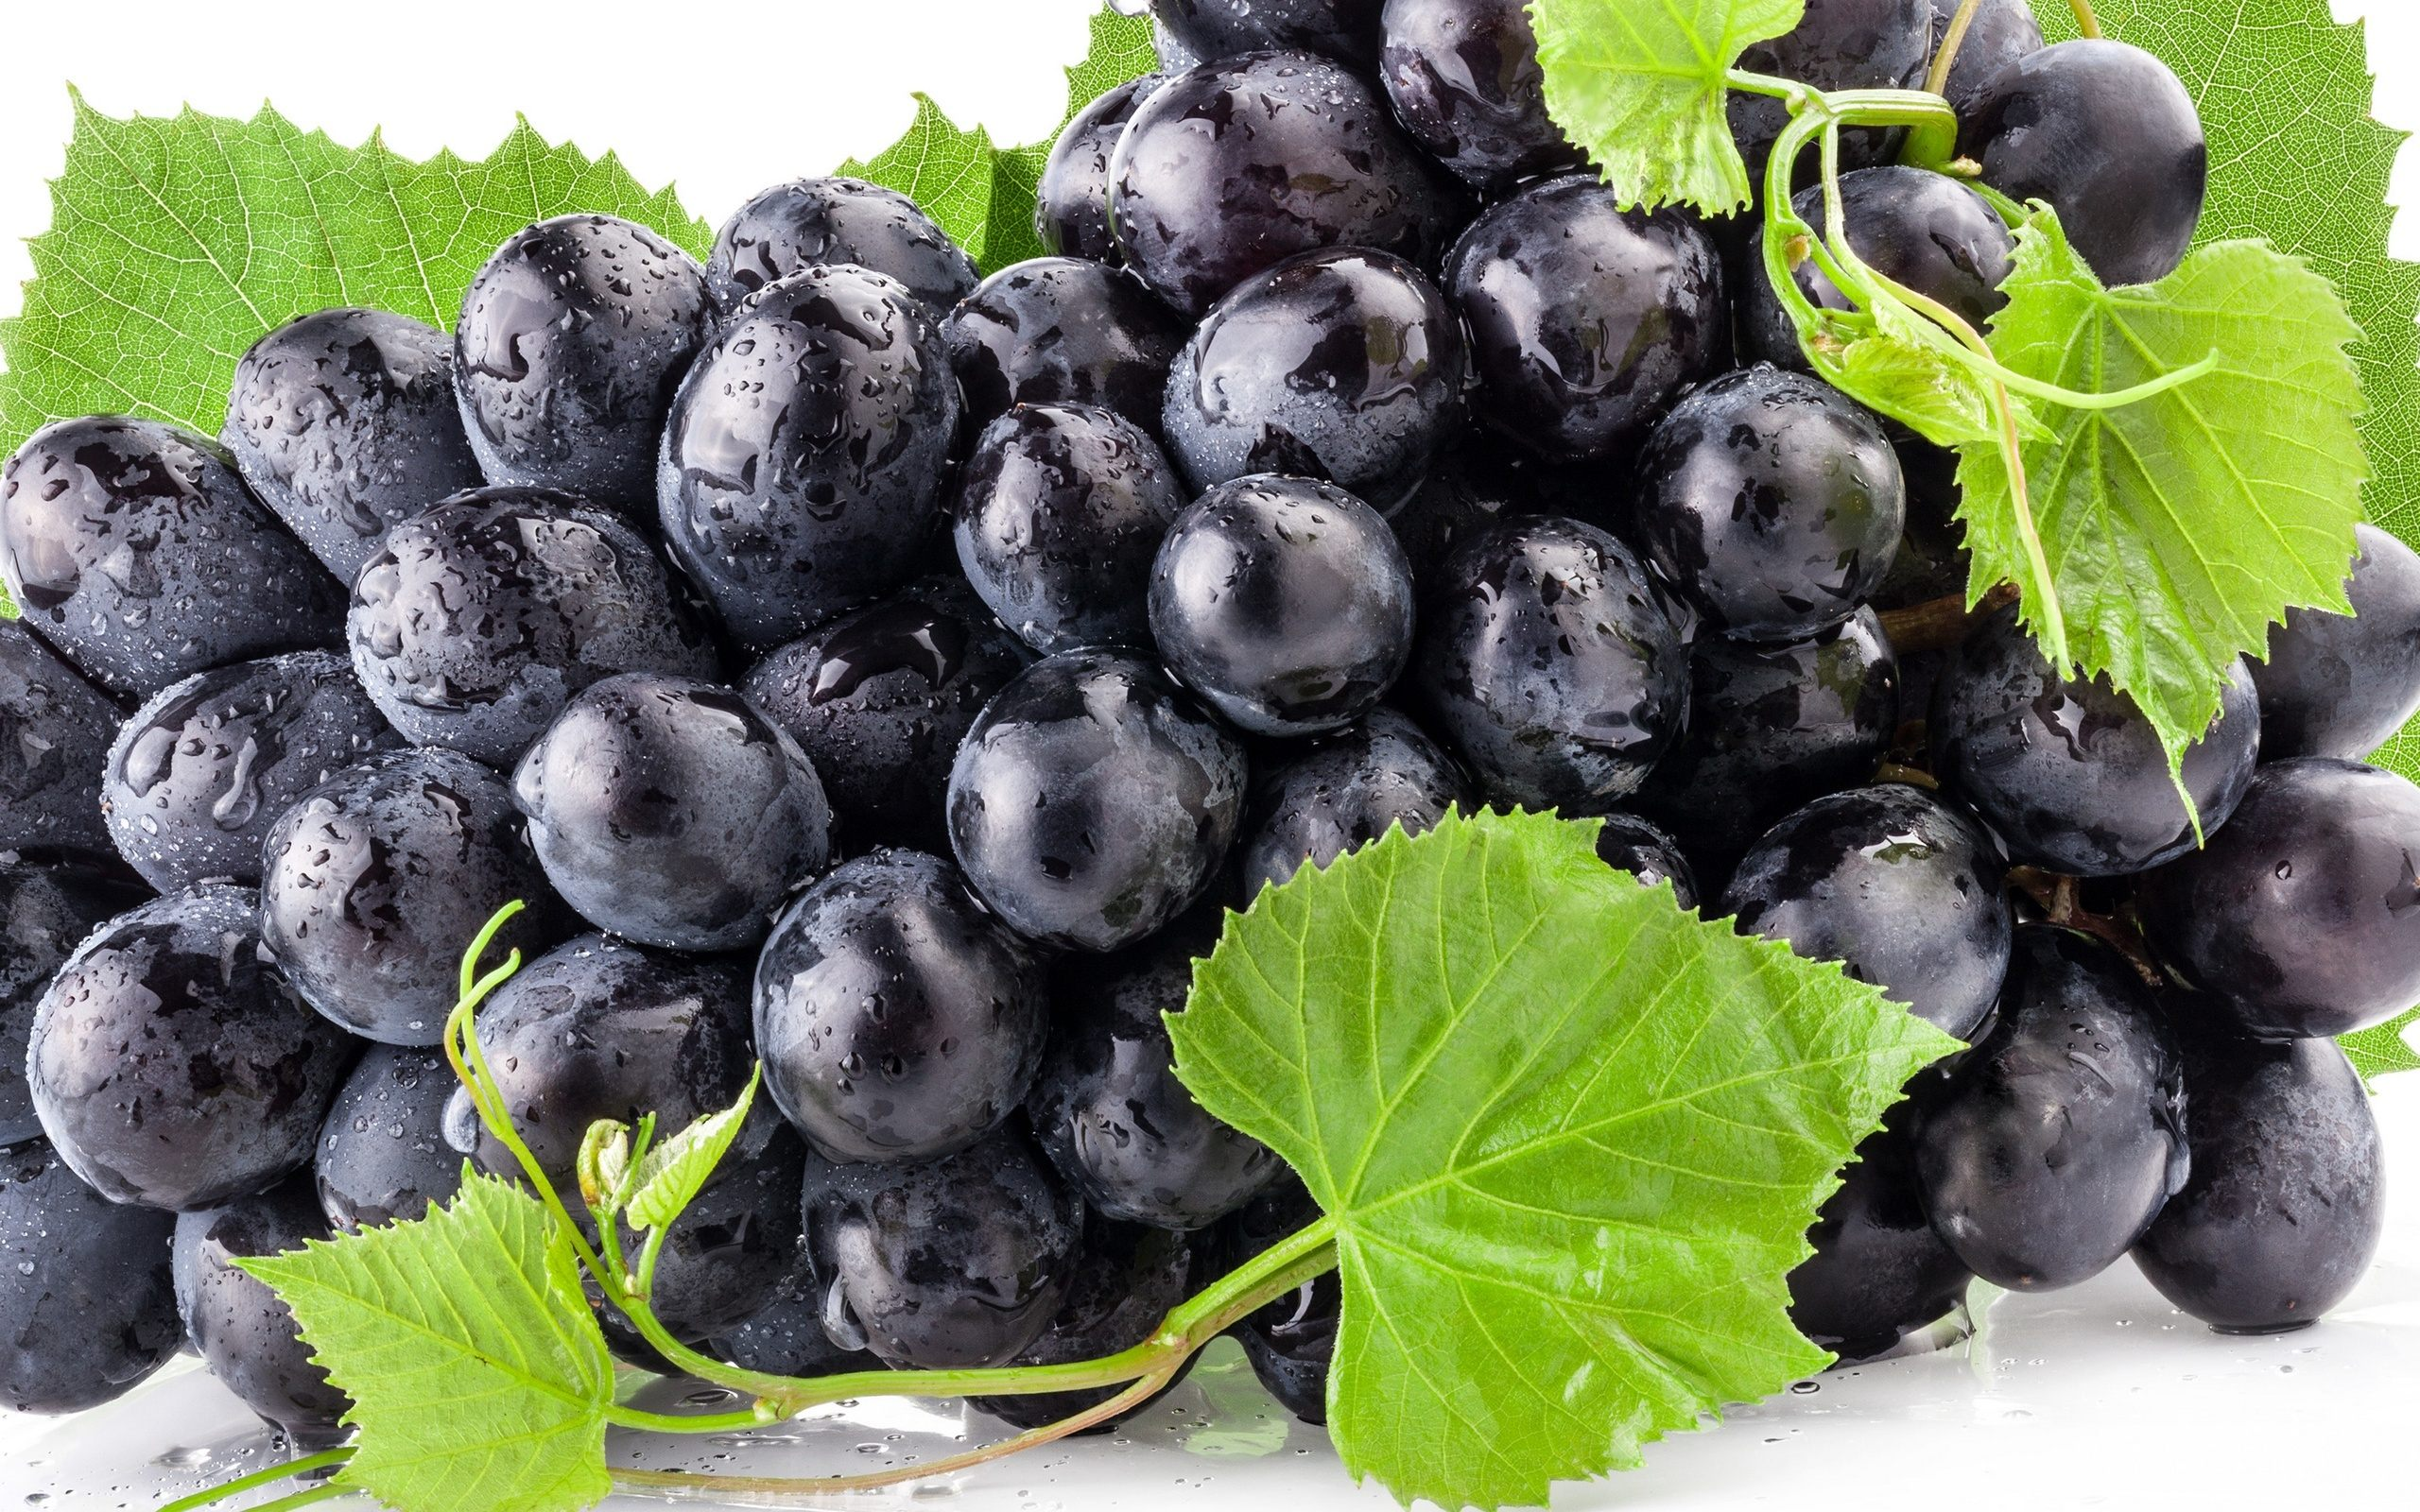 Black Grape Fruit Wallpaper For Desktop Download High Quality 2560x1600